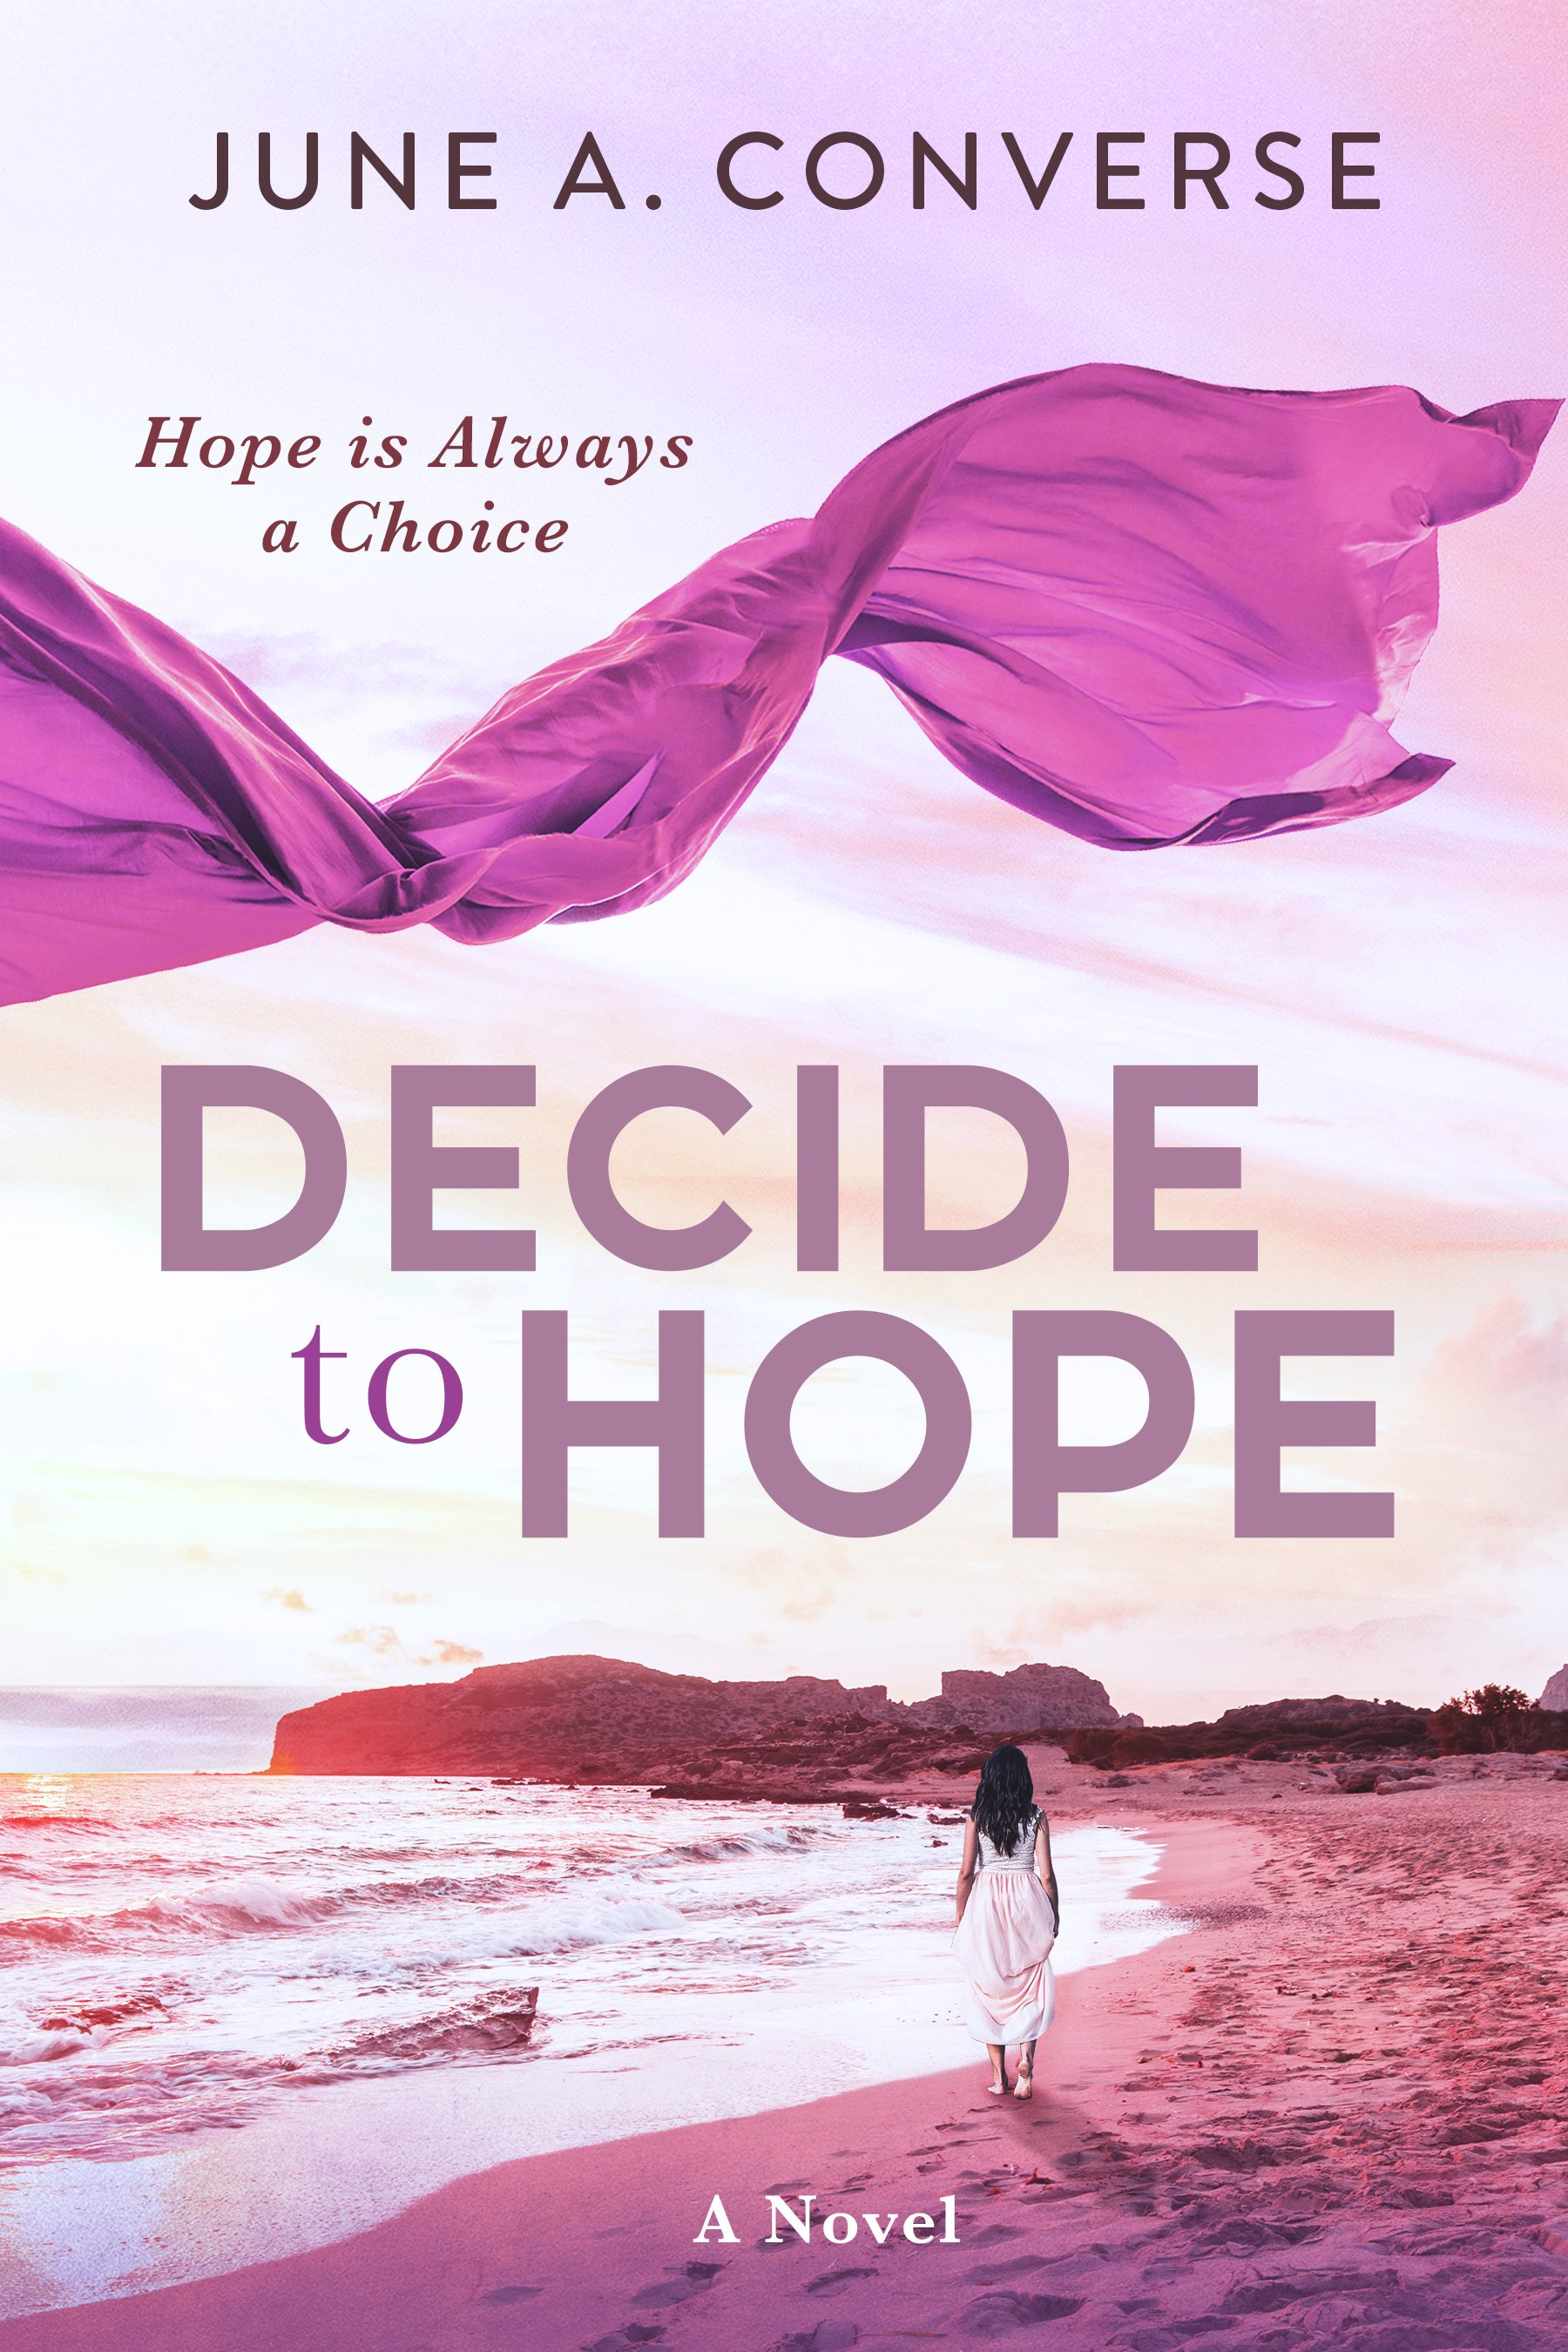 Decide to Hope Cover: Woman walking along the beach at sunset - Decide to Hope cover by June A. Converse